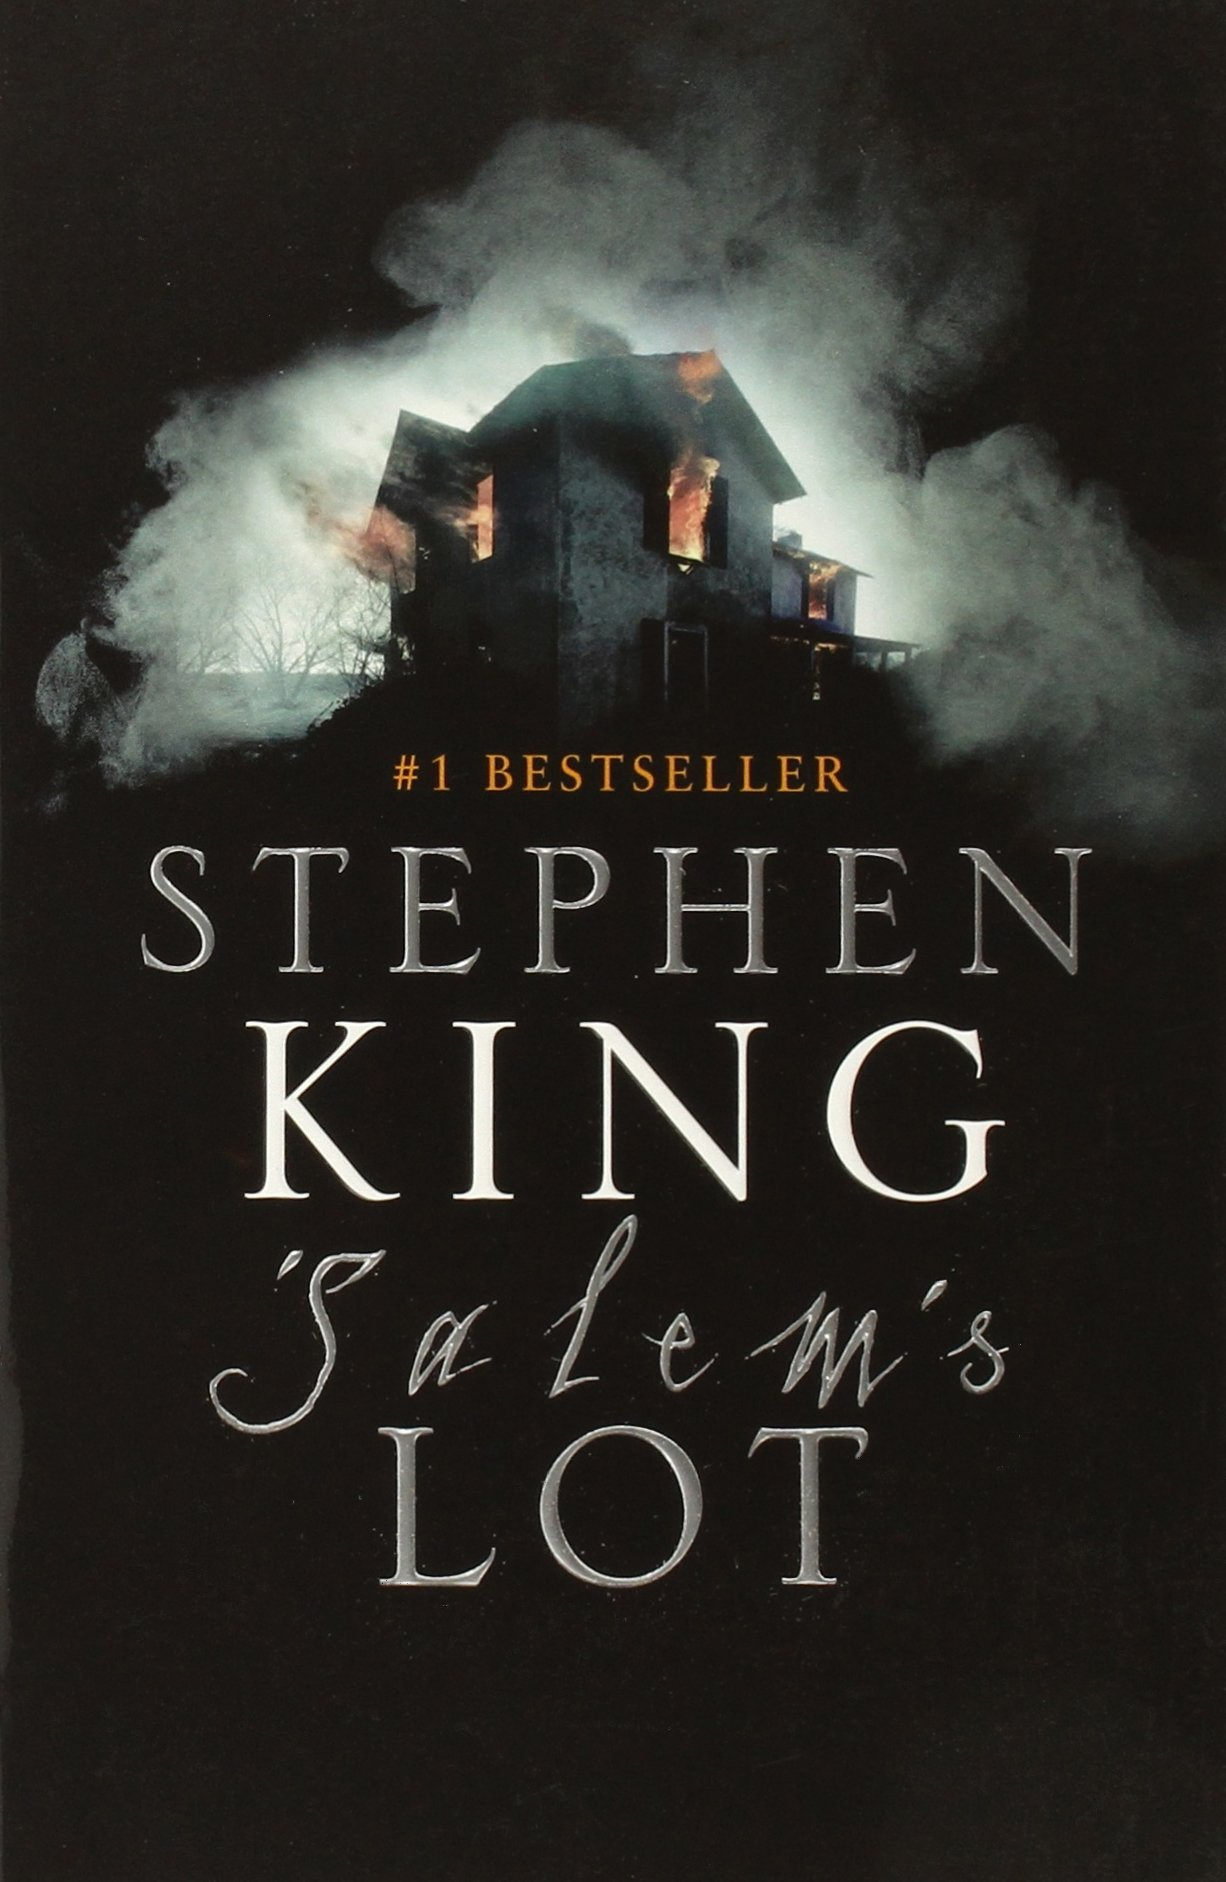 stephen king books salem vampire lot kings horror covers libros cover novel vampires stories fiction short story author stand nightmares